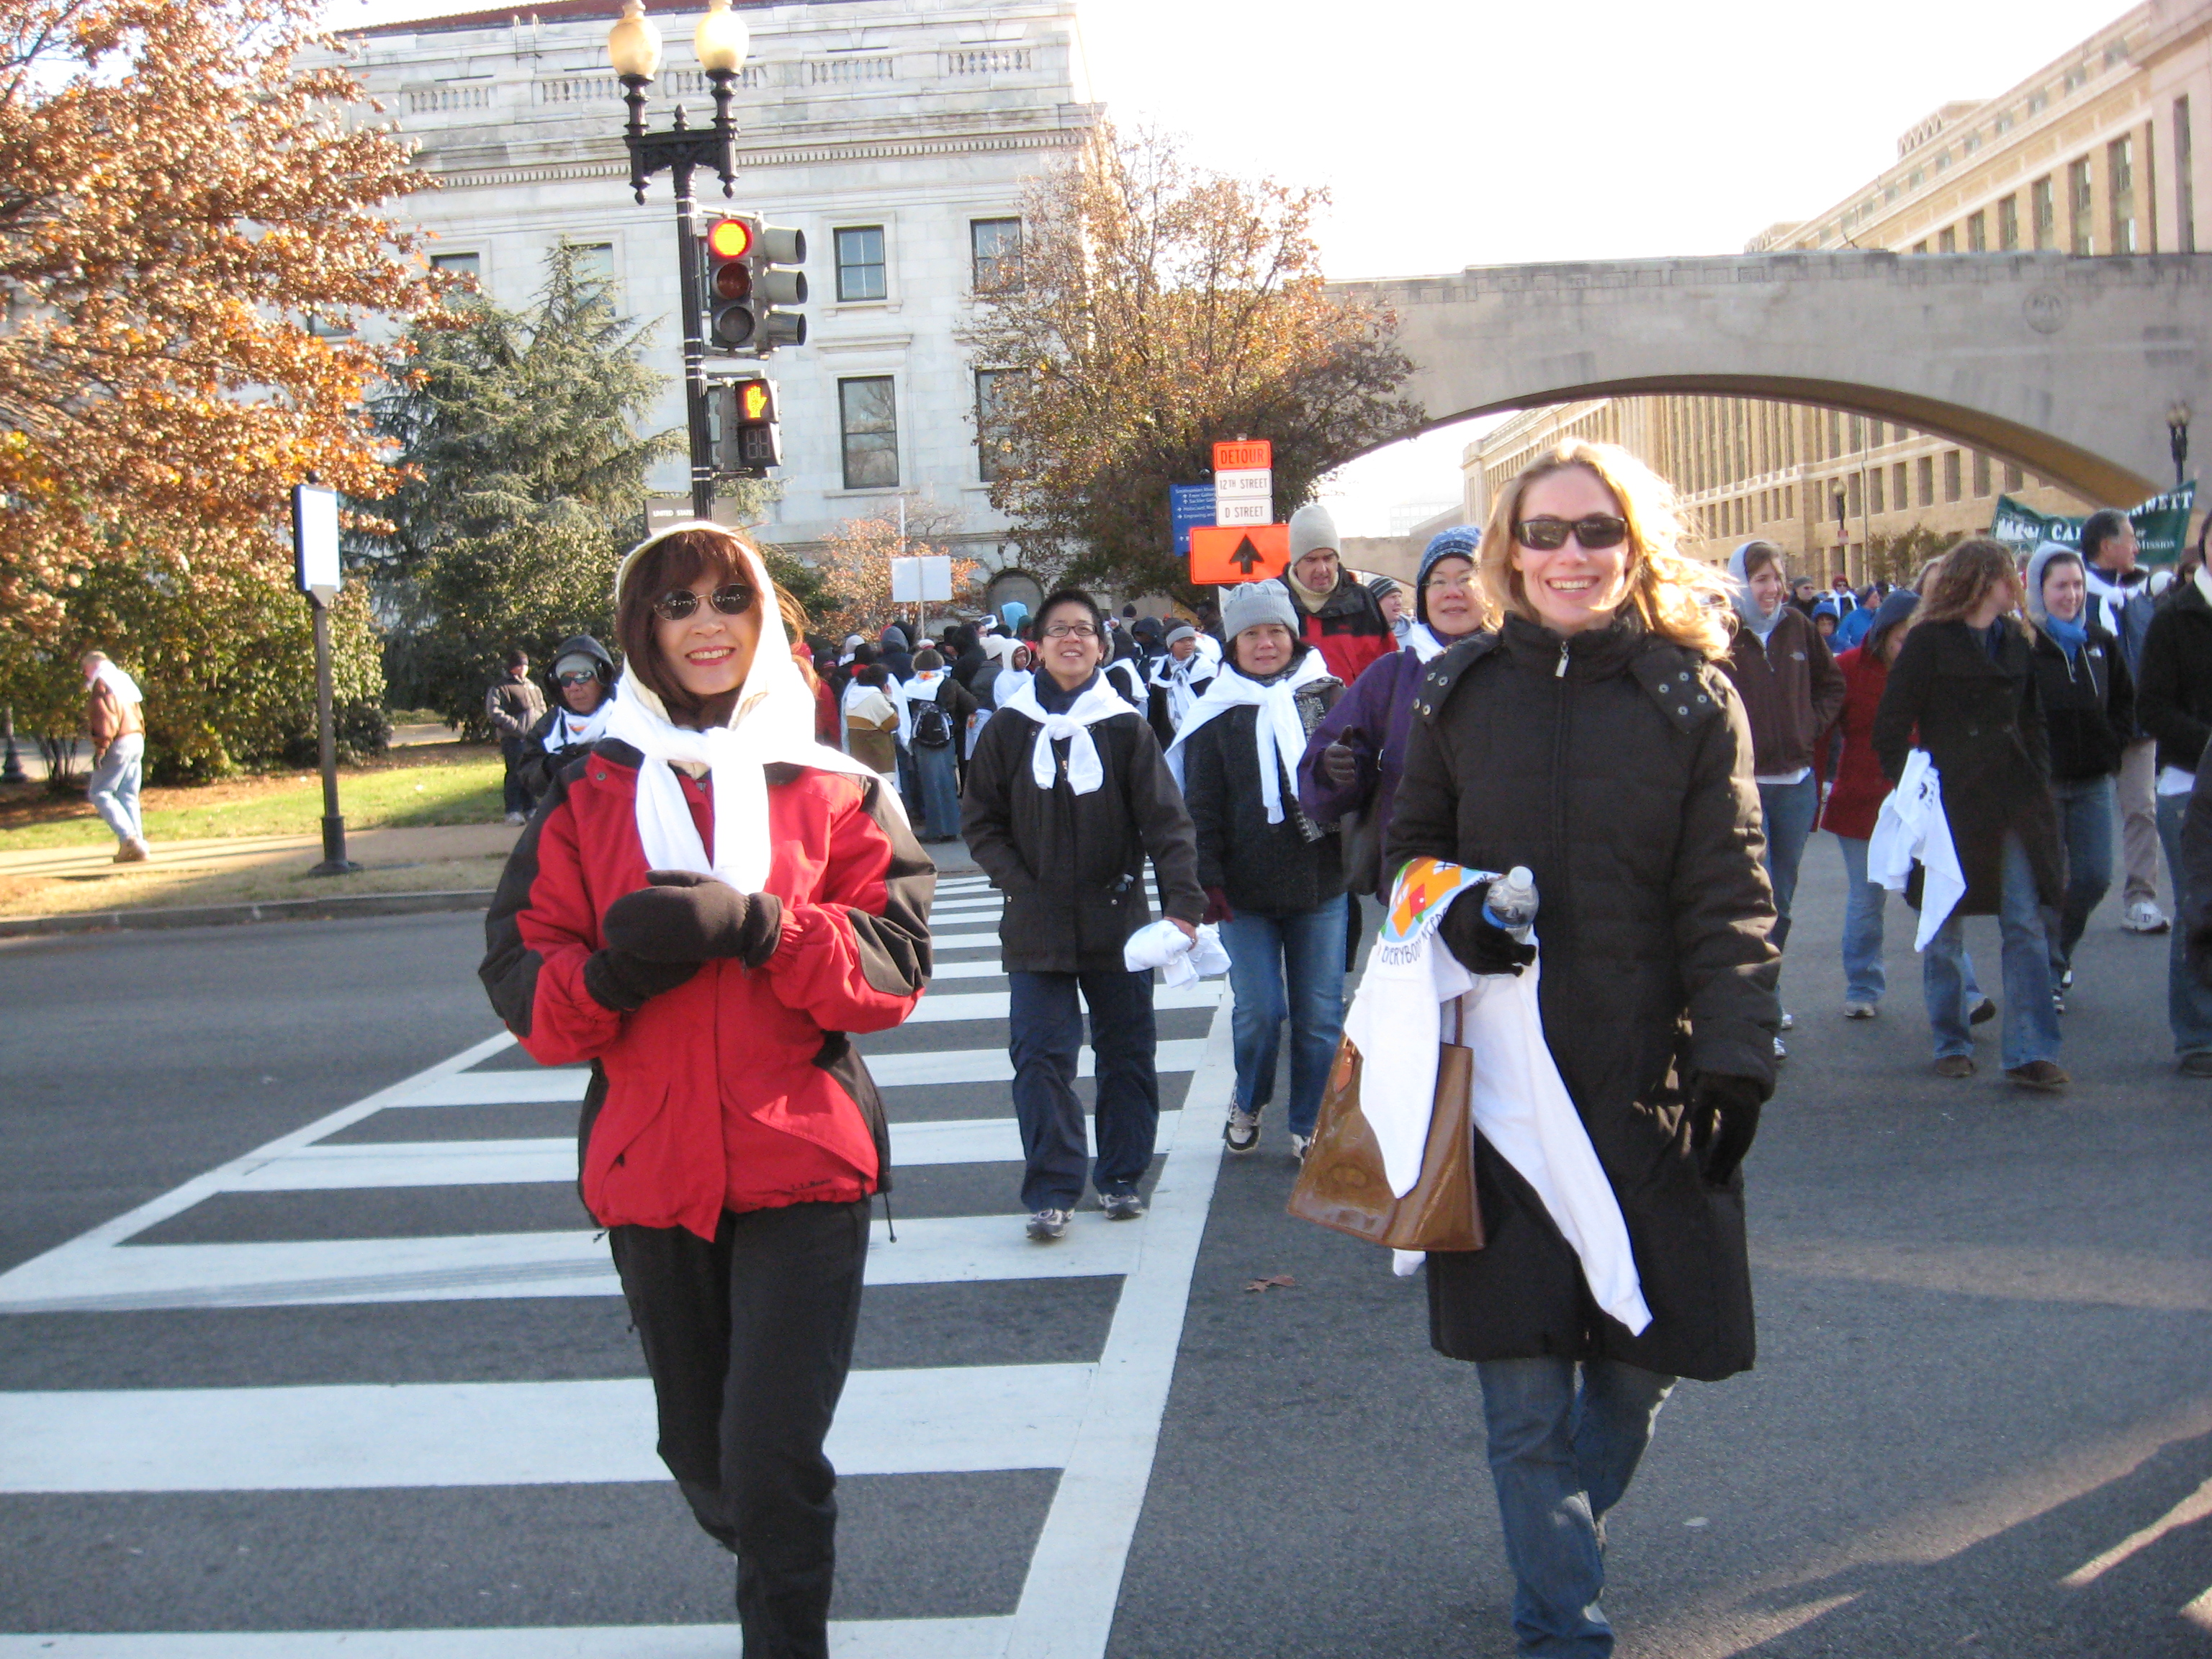 Help the Homeless Walk-A-Thon in Washington, DC